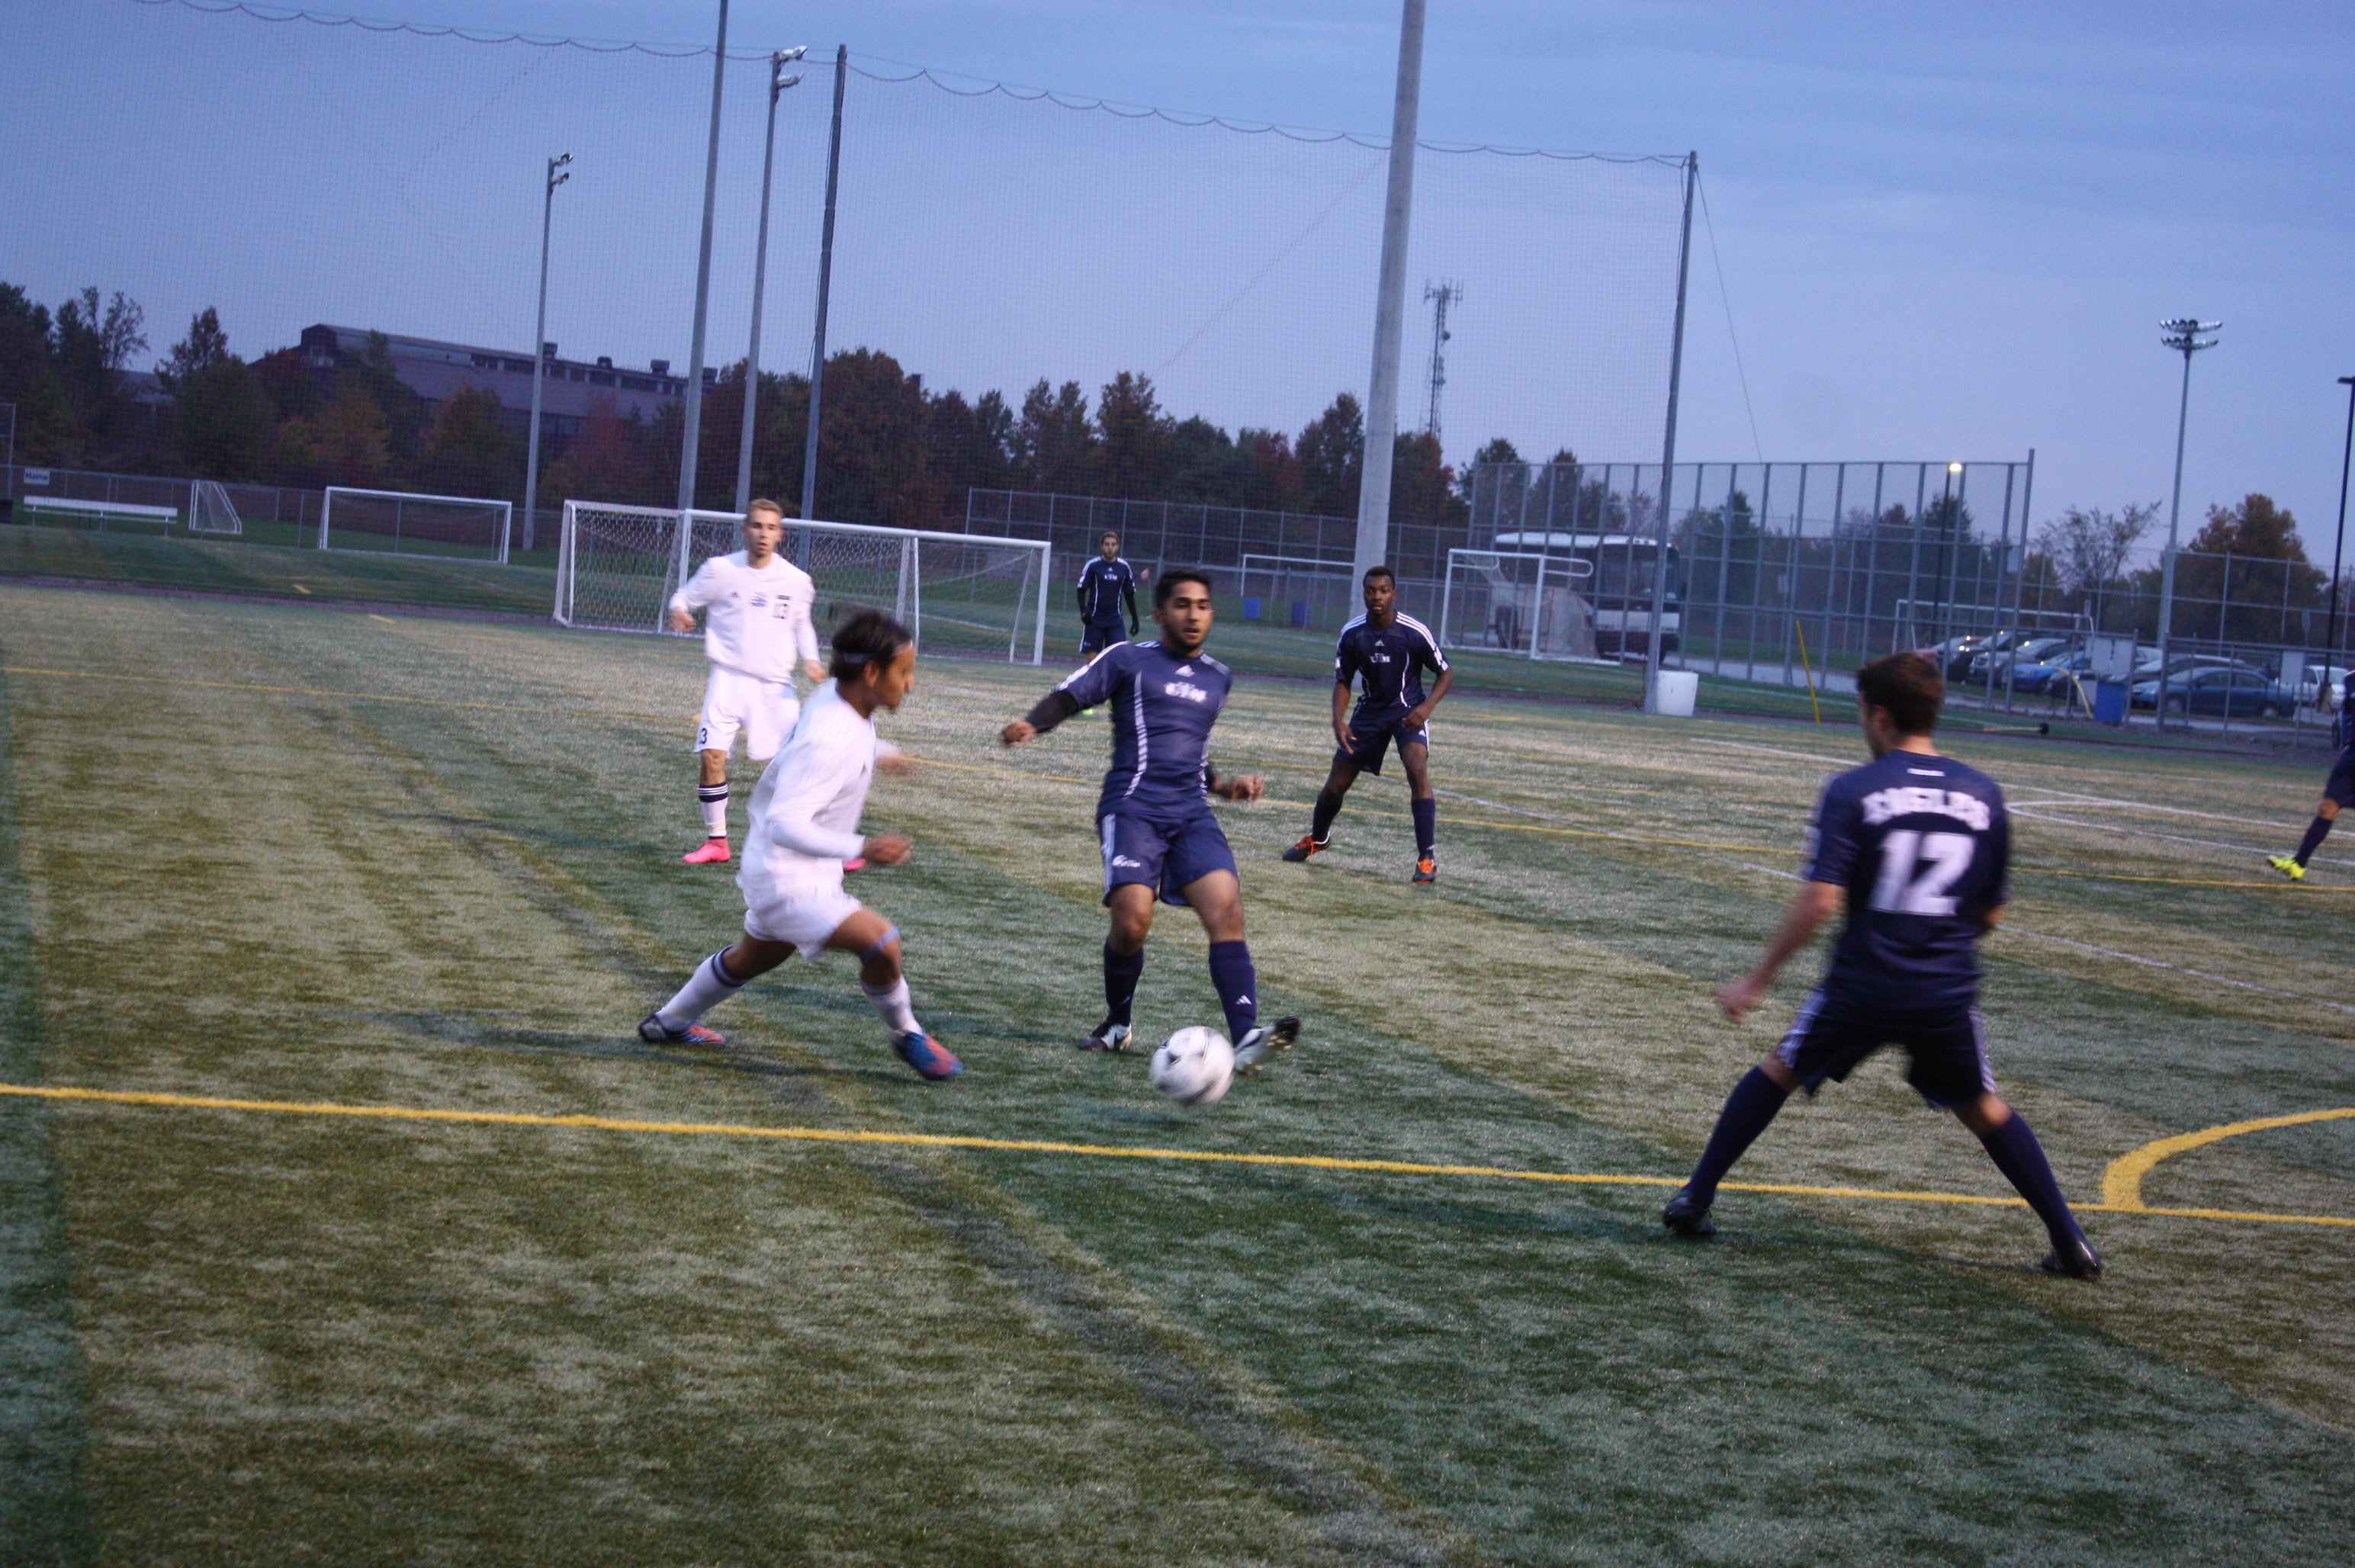 Men's Soccer - UTM v Niagara College (Oct 20th)